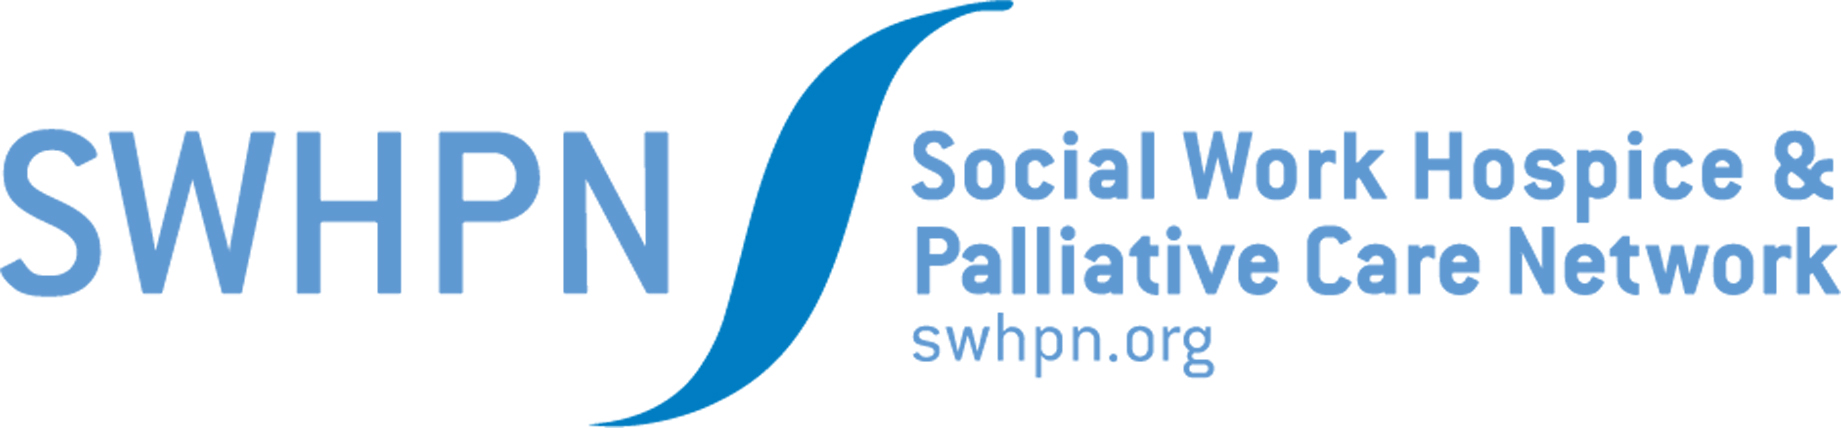 Social Work Hospice and Palliative Care Network